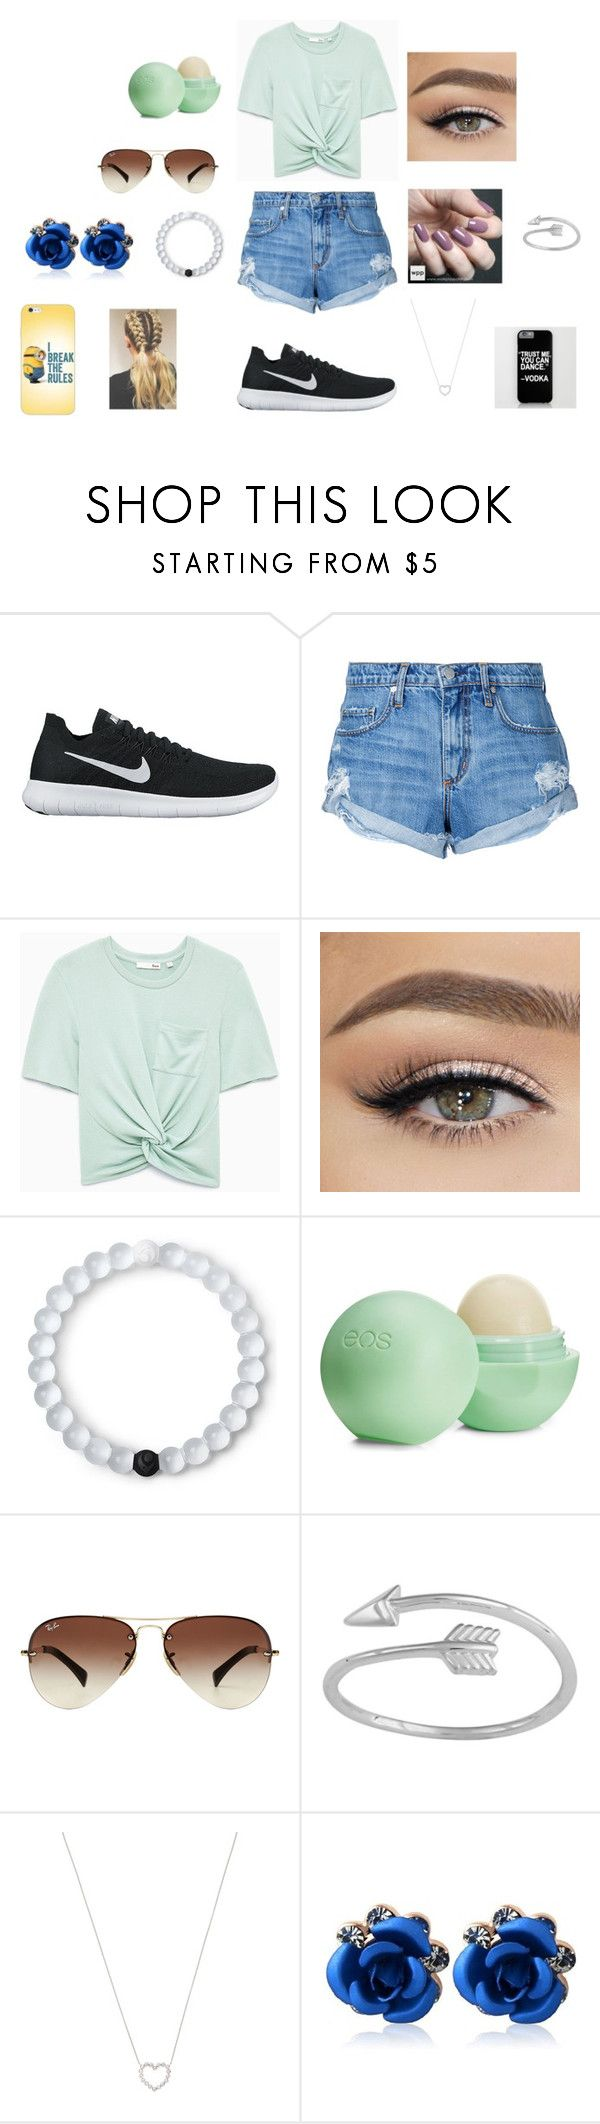 """""""Day out"""" by jeorgiak22 on Polyvore featuring beauty, NIKE, Nobody Denim, Zoya, Lokai, Eos, Ray-Ban, Midsummer Star and Tiffany & Co."""